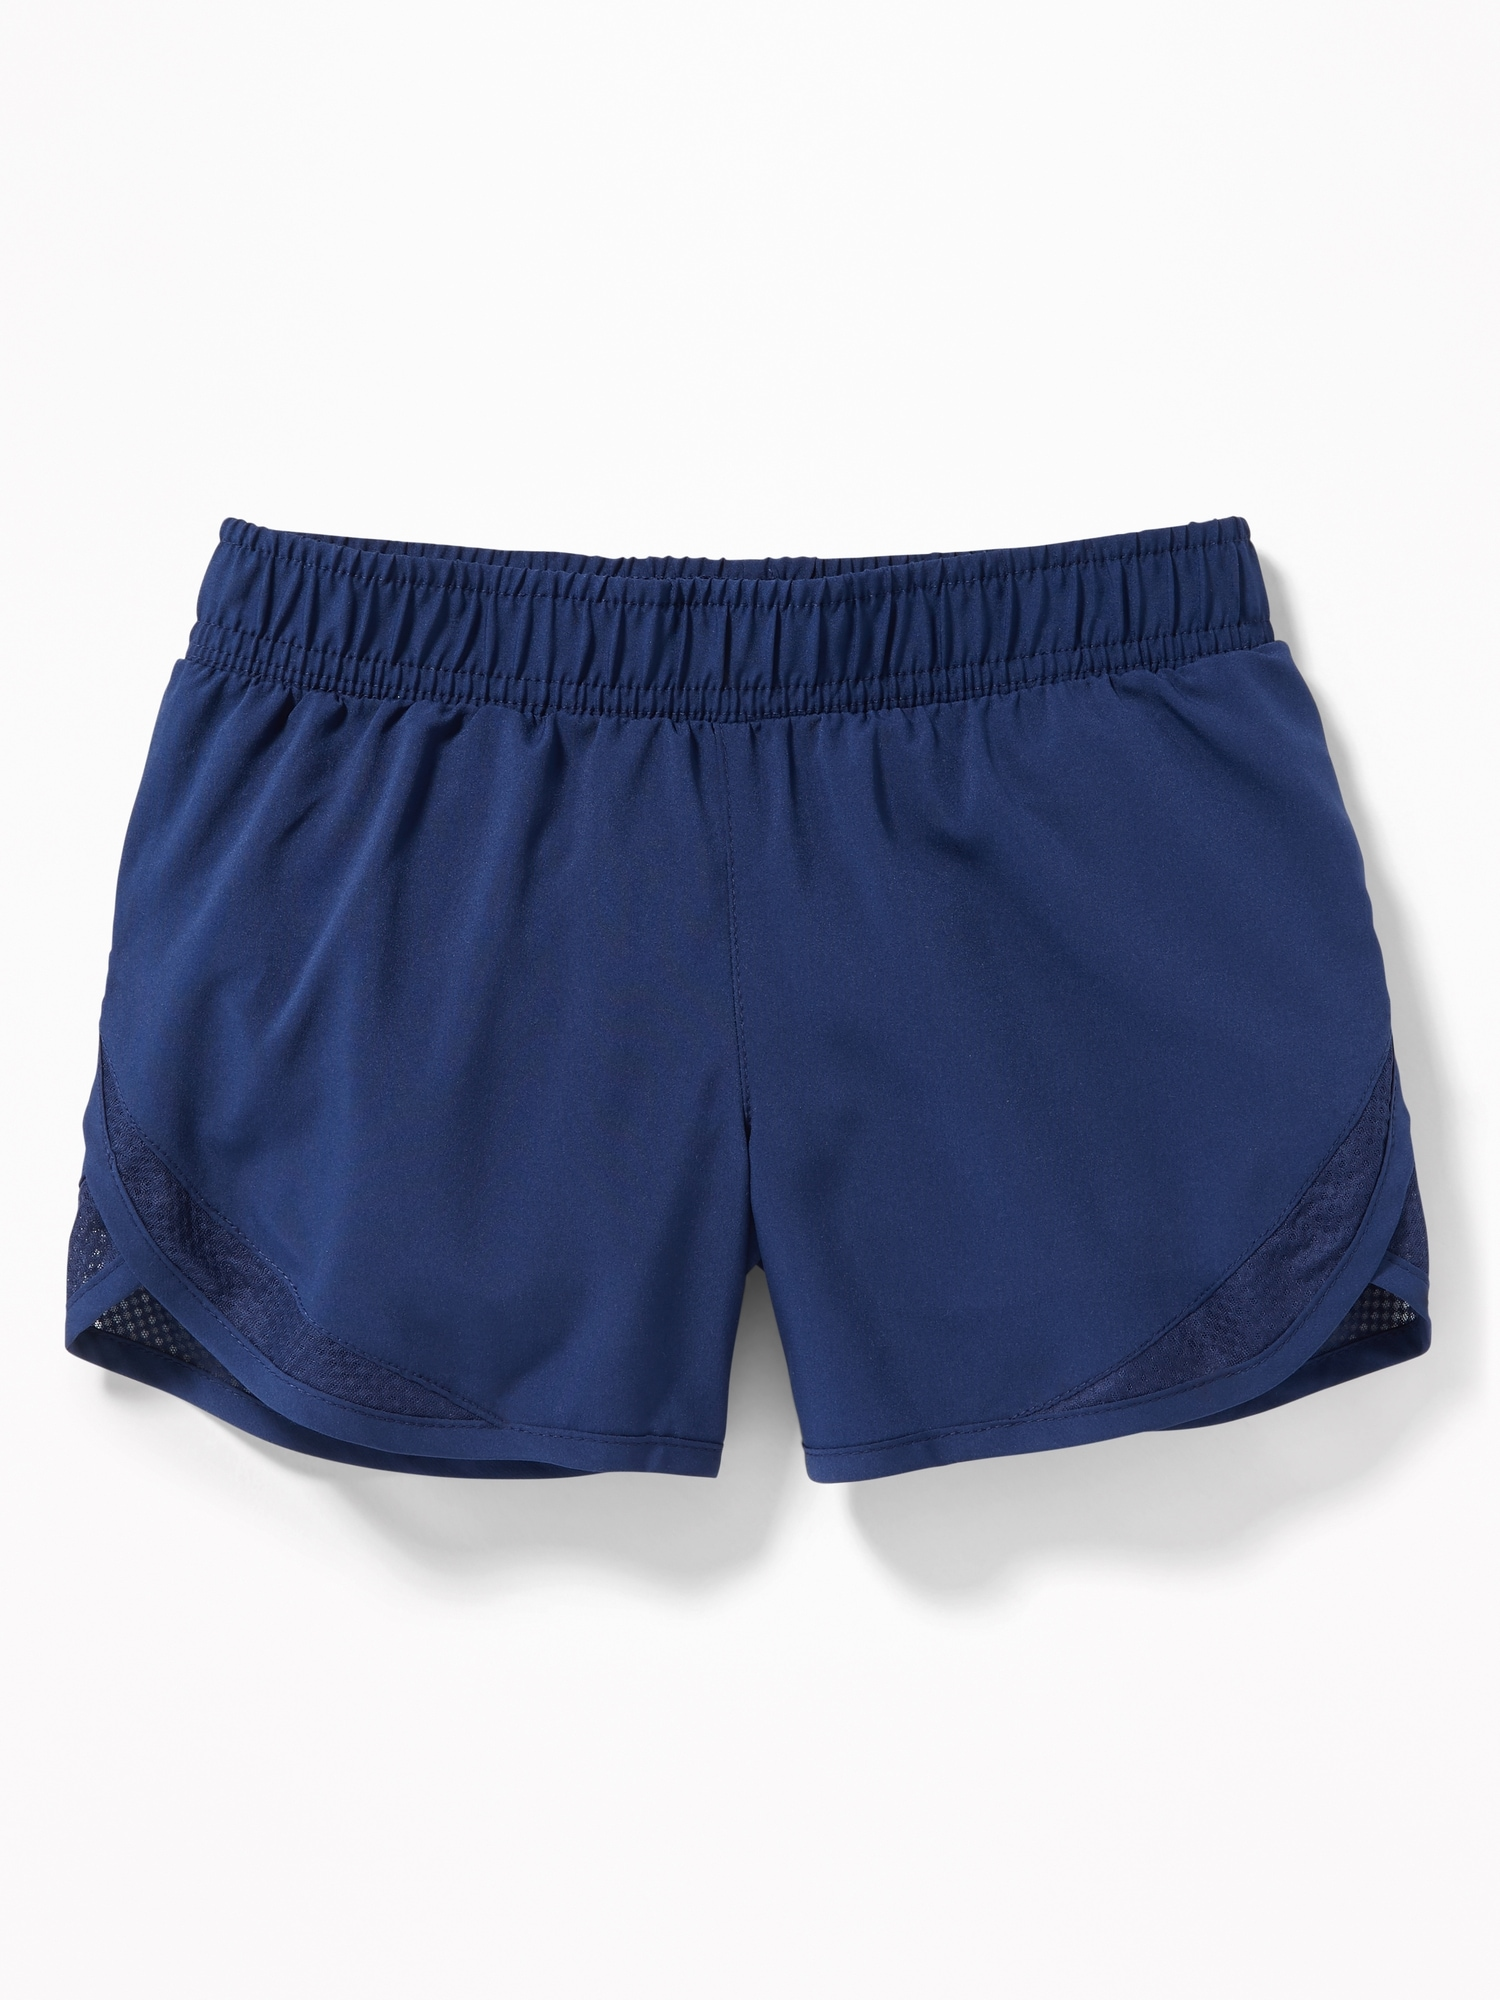 Go-Dry Cool Run Shorts for Girls | Old Navy